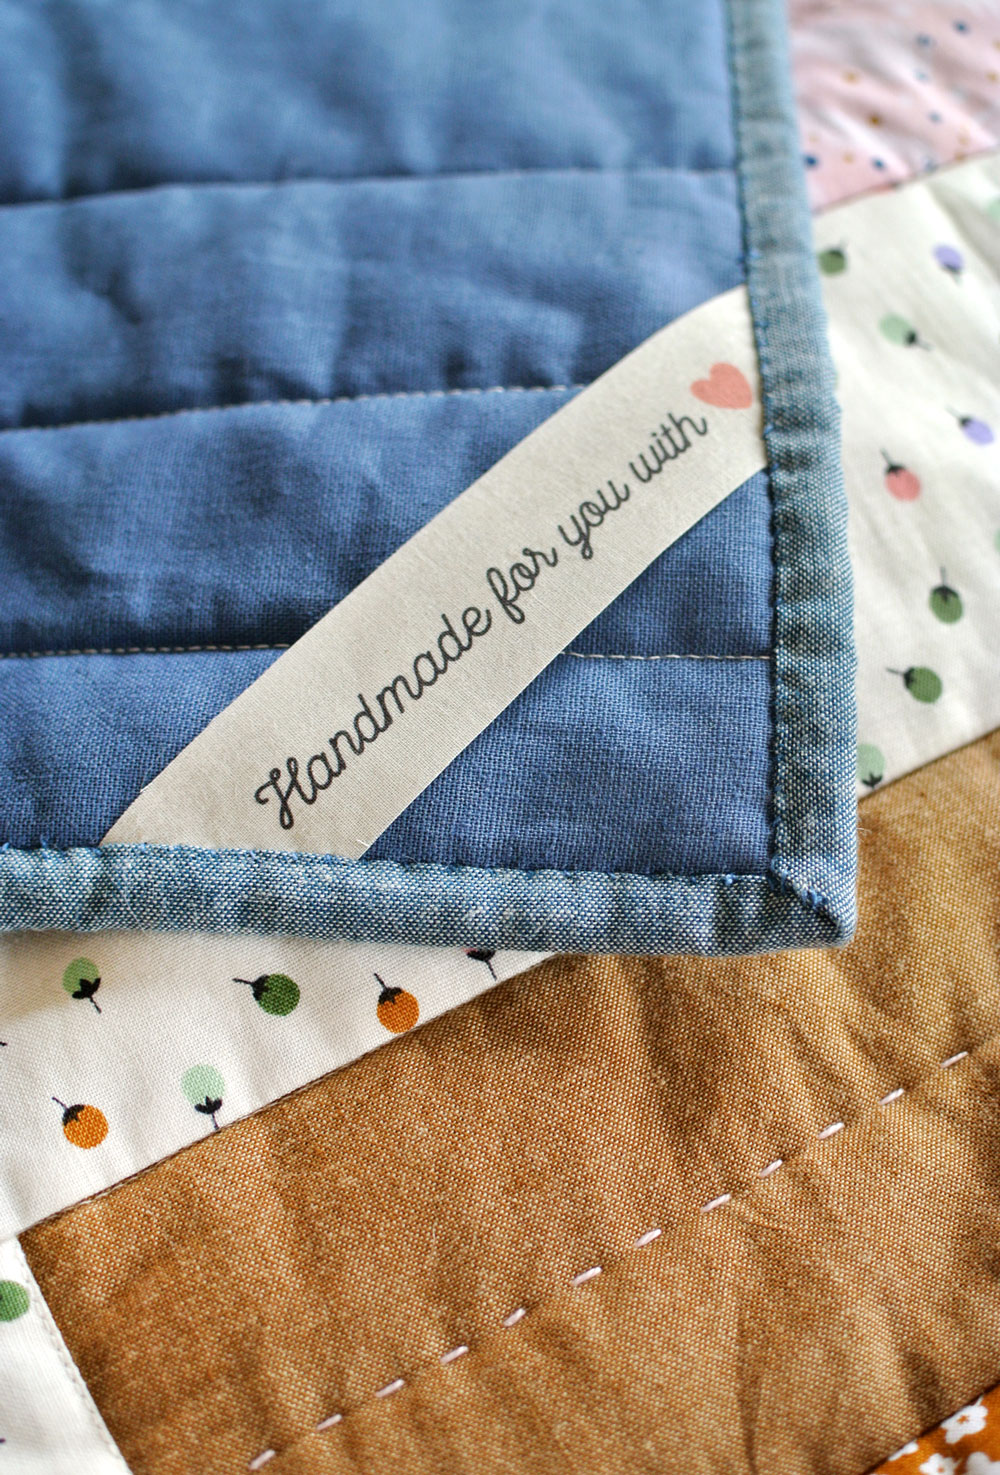 Print this free quilt label at home